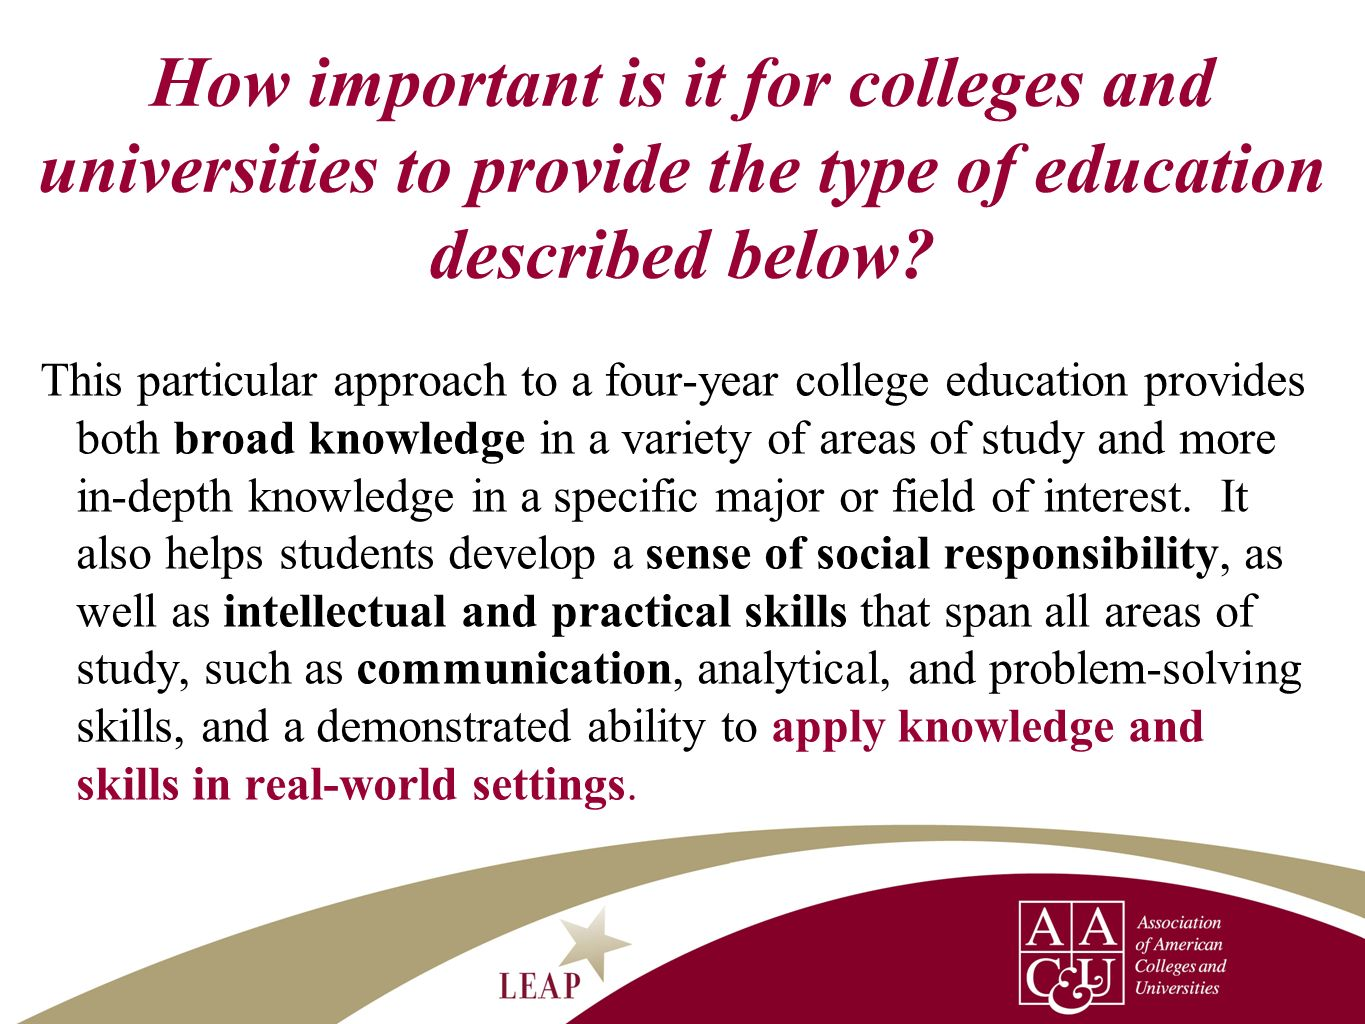 How important is it for colleges and universities to provide the type of education described below